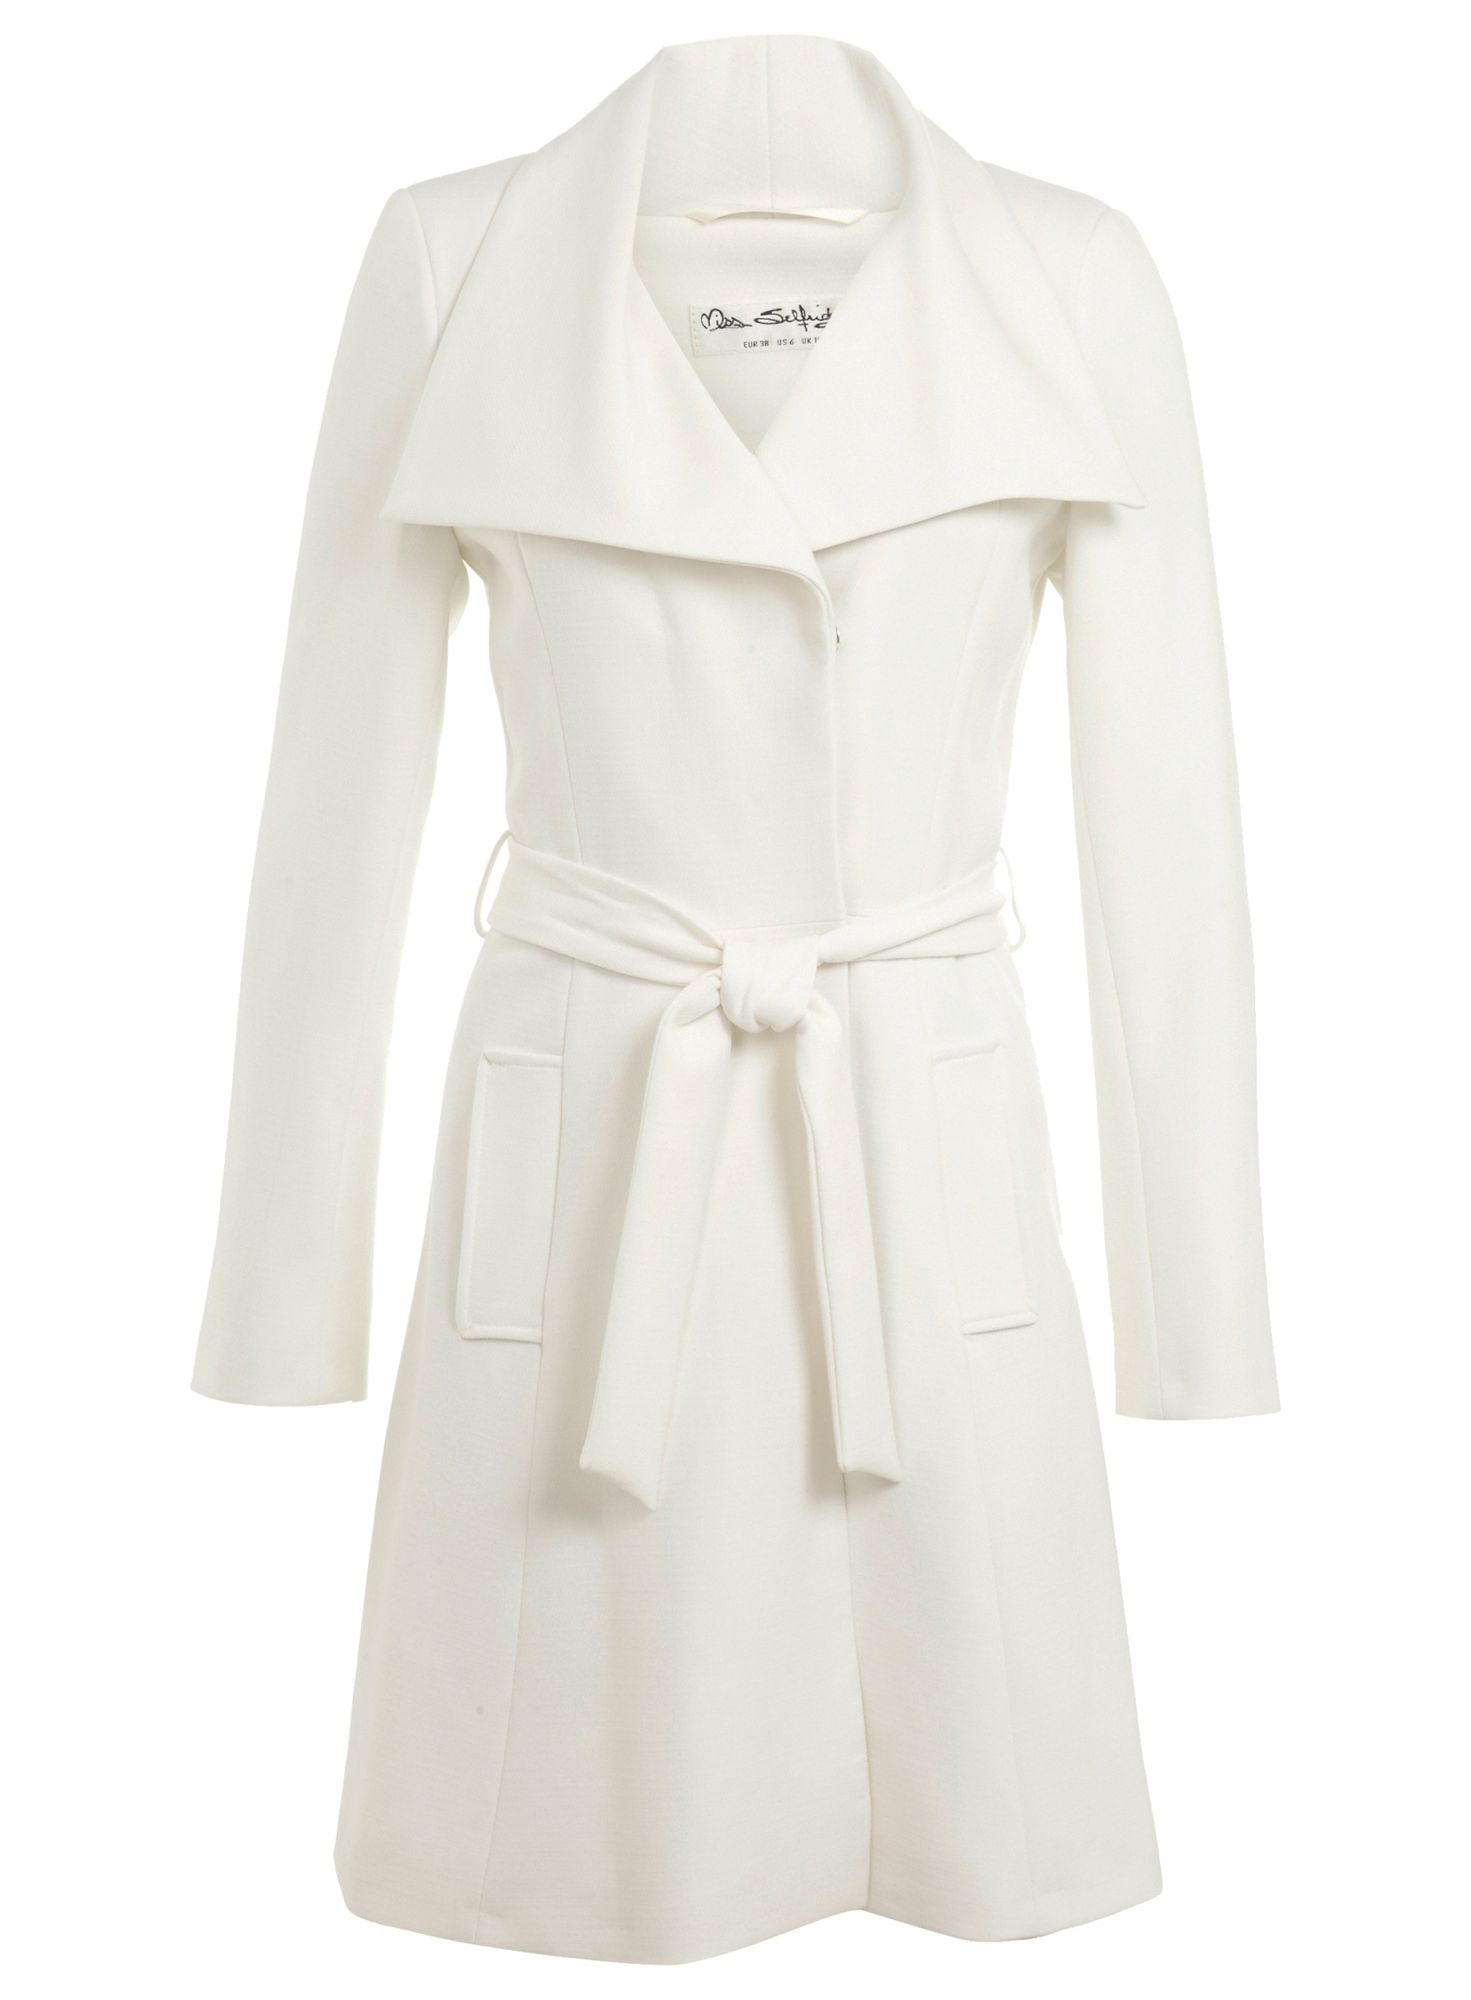 selfridge single women Women's coats and jackets - next south africa international shipping and returns available buy now.